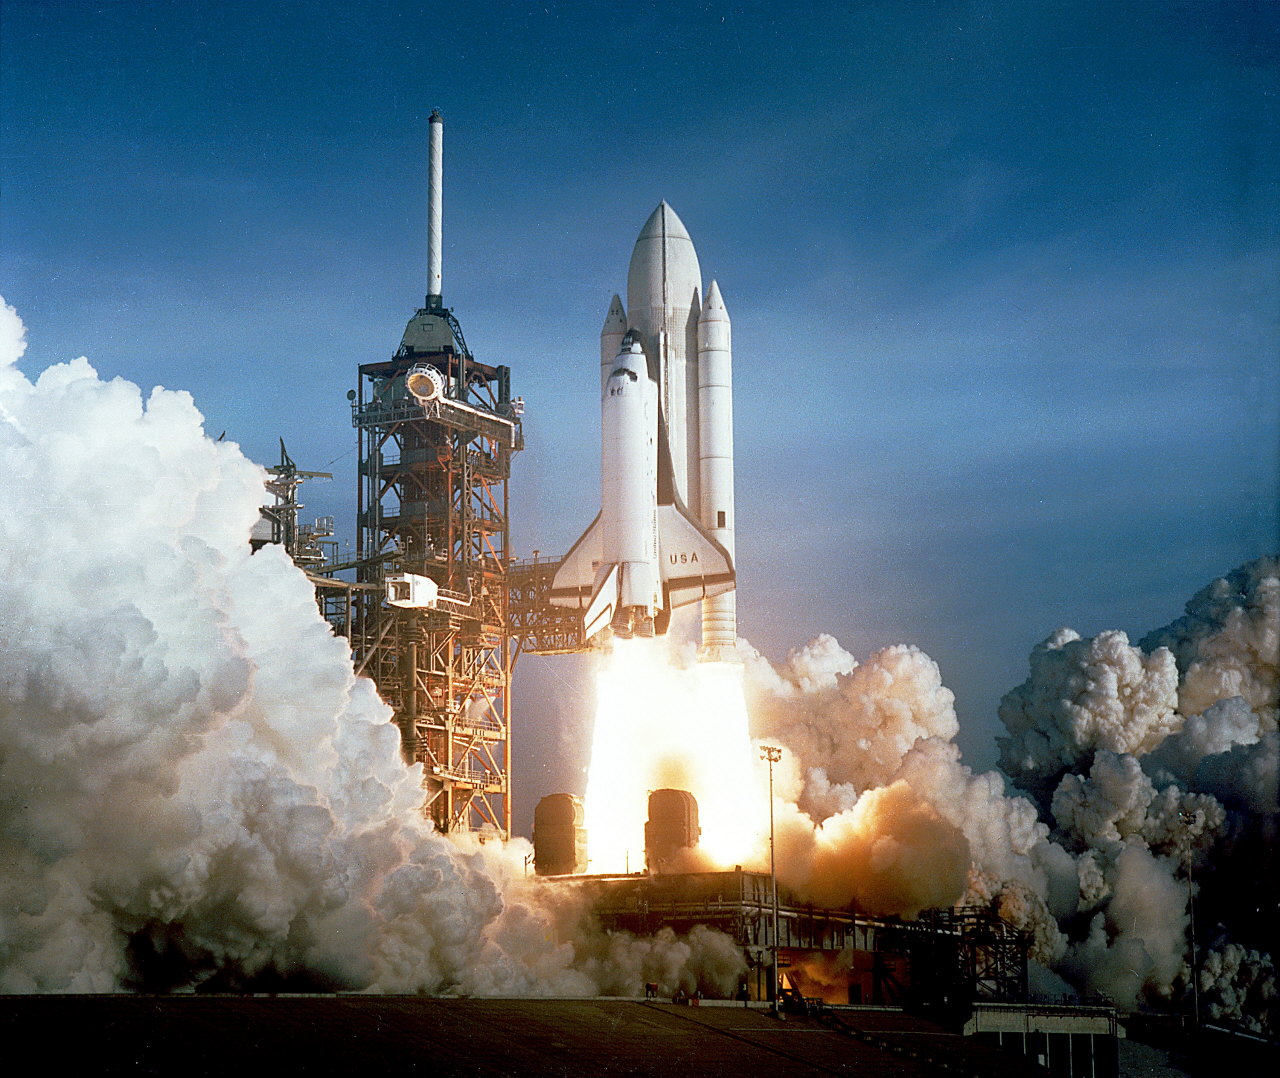 usa space shuttle program - photo #20